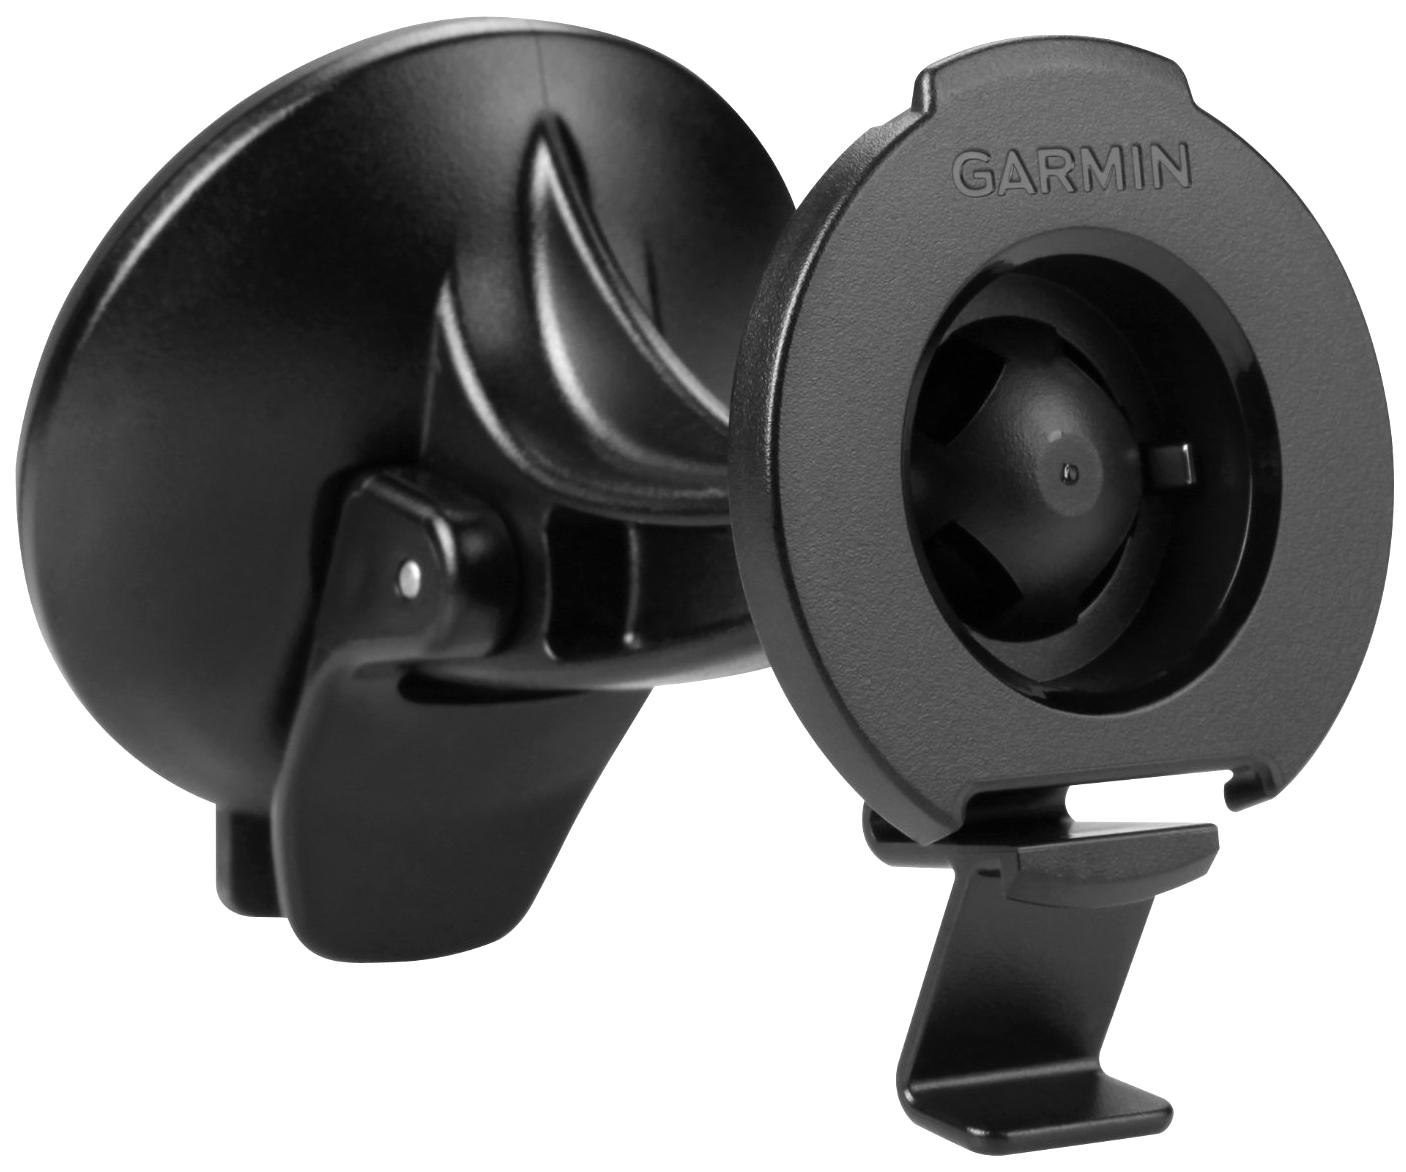 Garmin nuvi Sat Nav Universal Suction Cup Mount